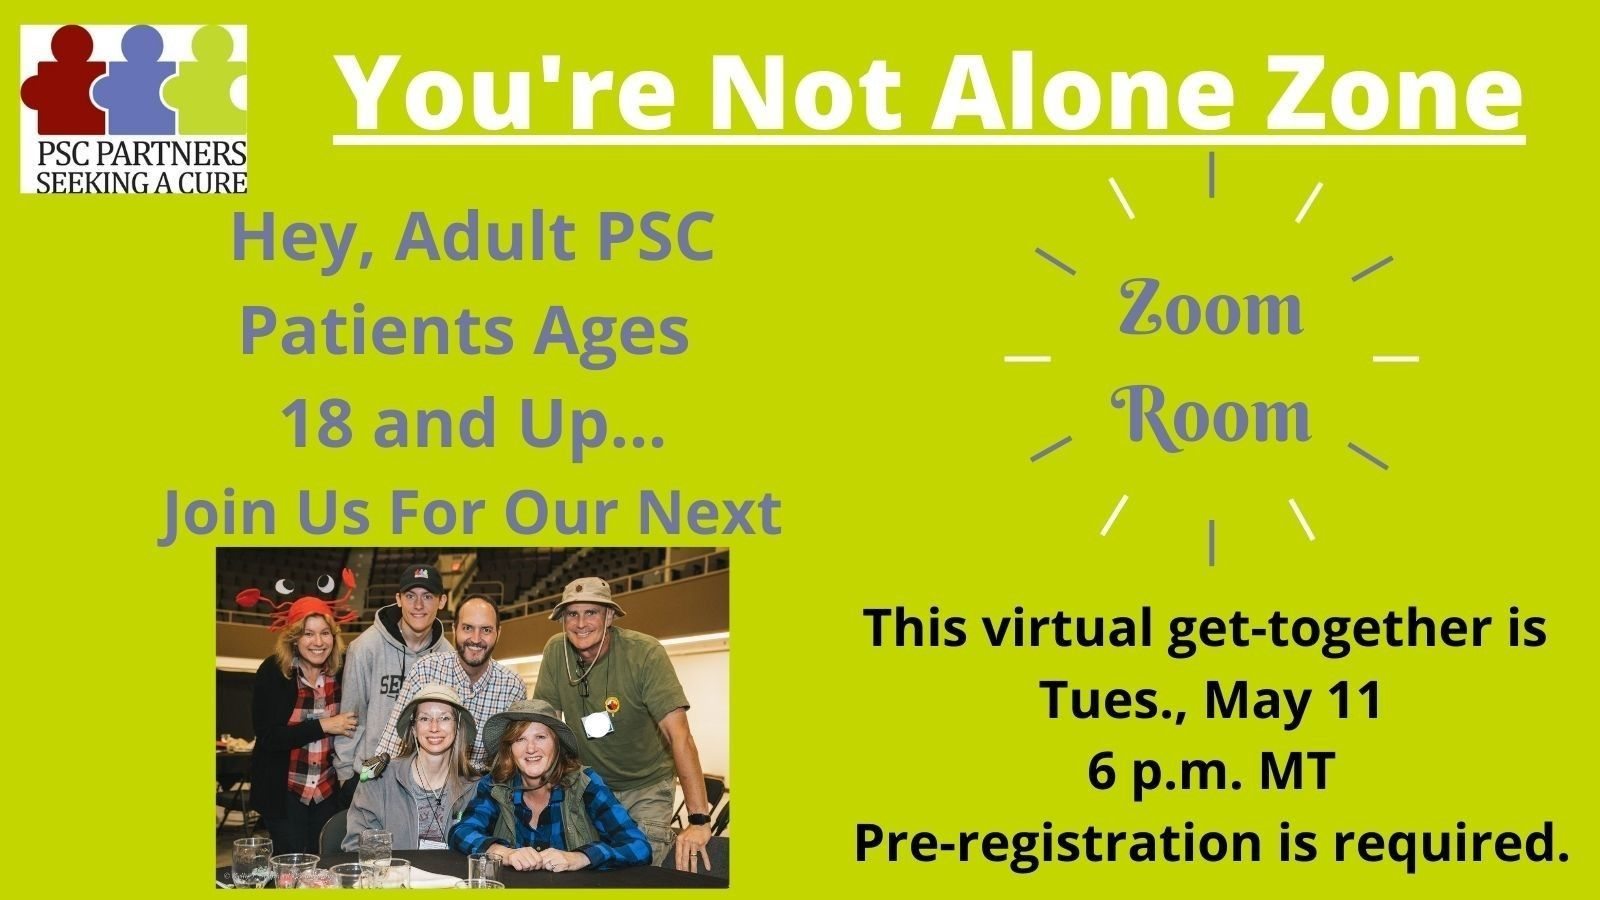 ZoomRoom PSC Adult Patients Ages 18 and Up